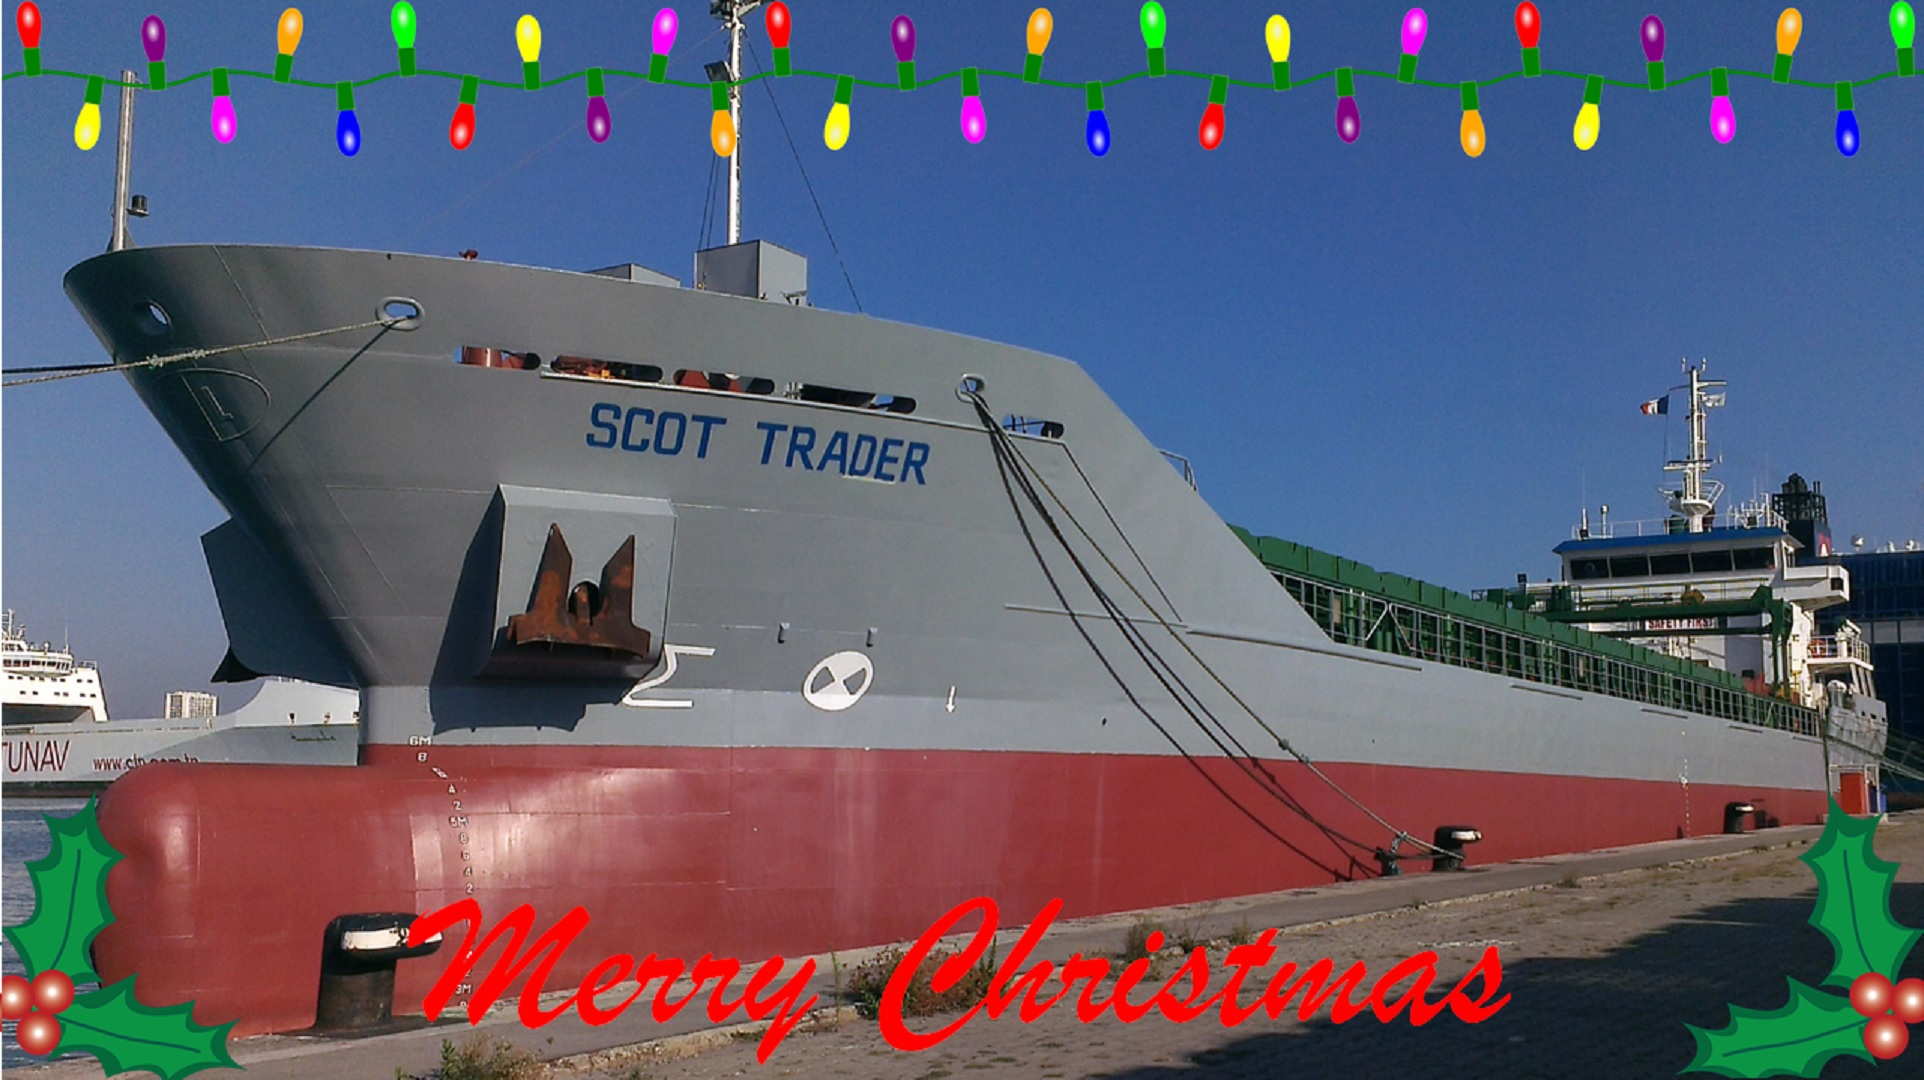 merry christmas from scotline